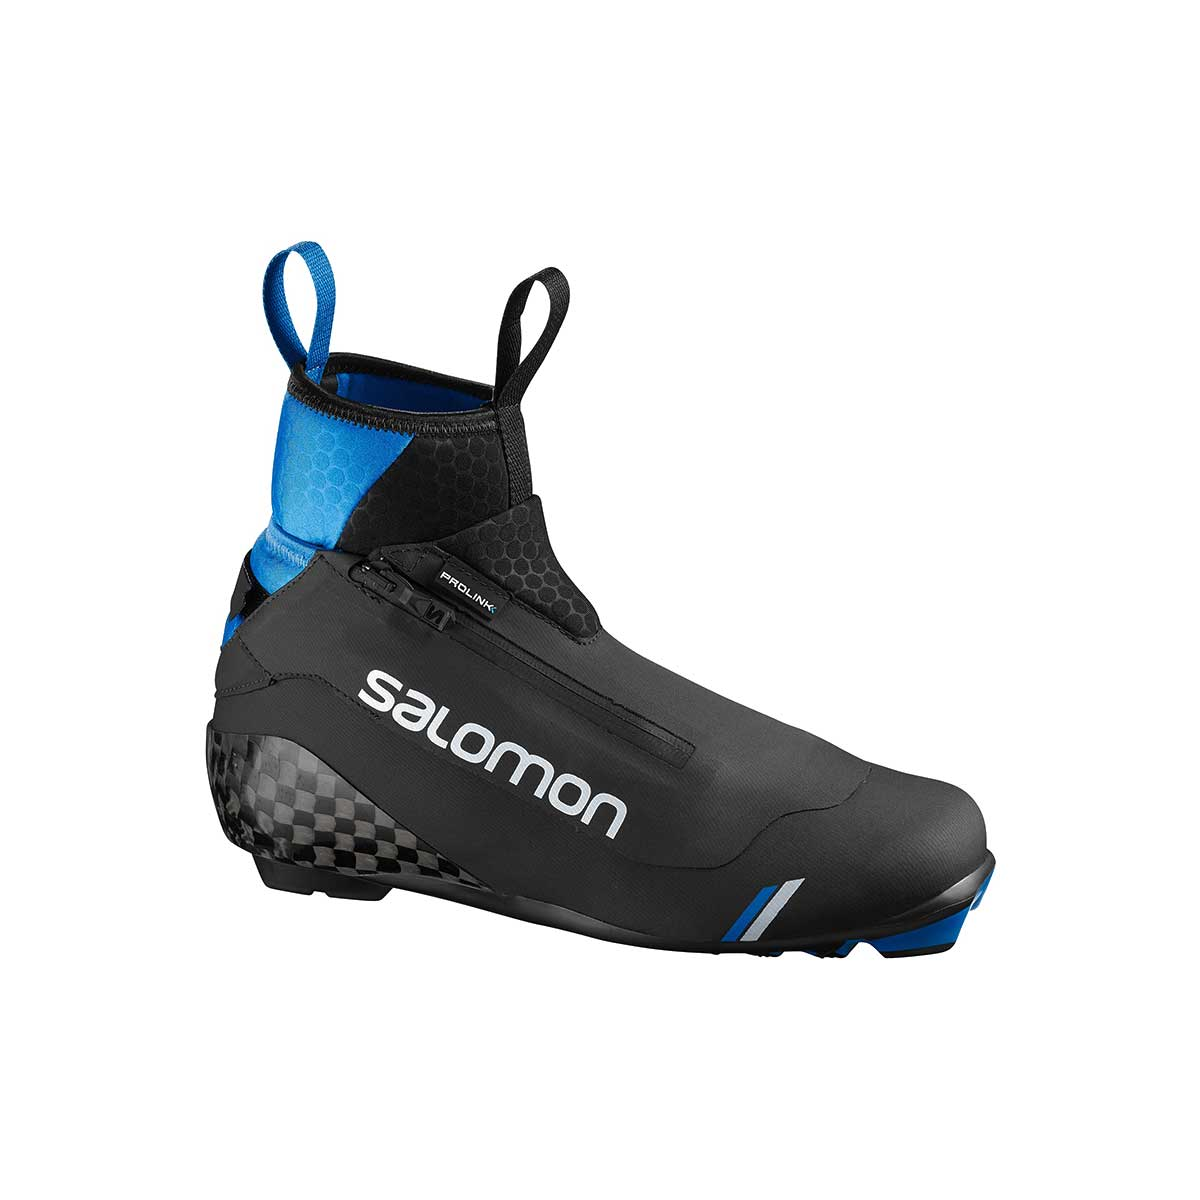 Salomon S Race Classic Prolink XC Shoes in Black